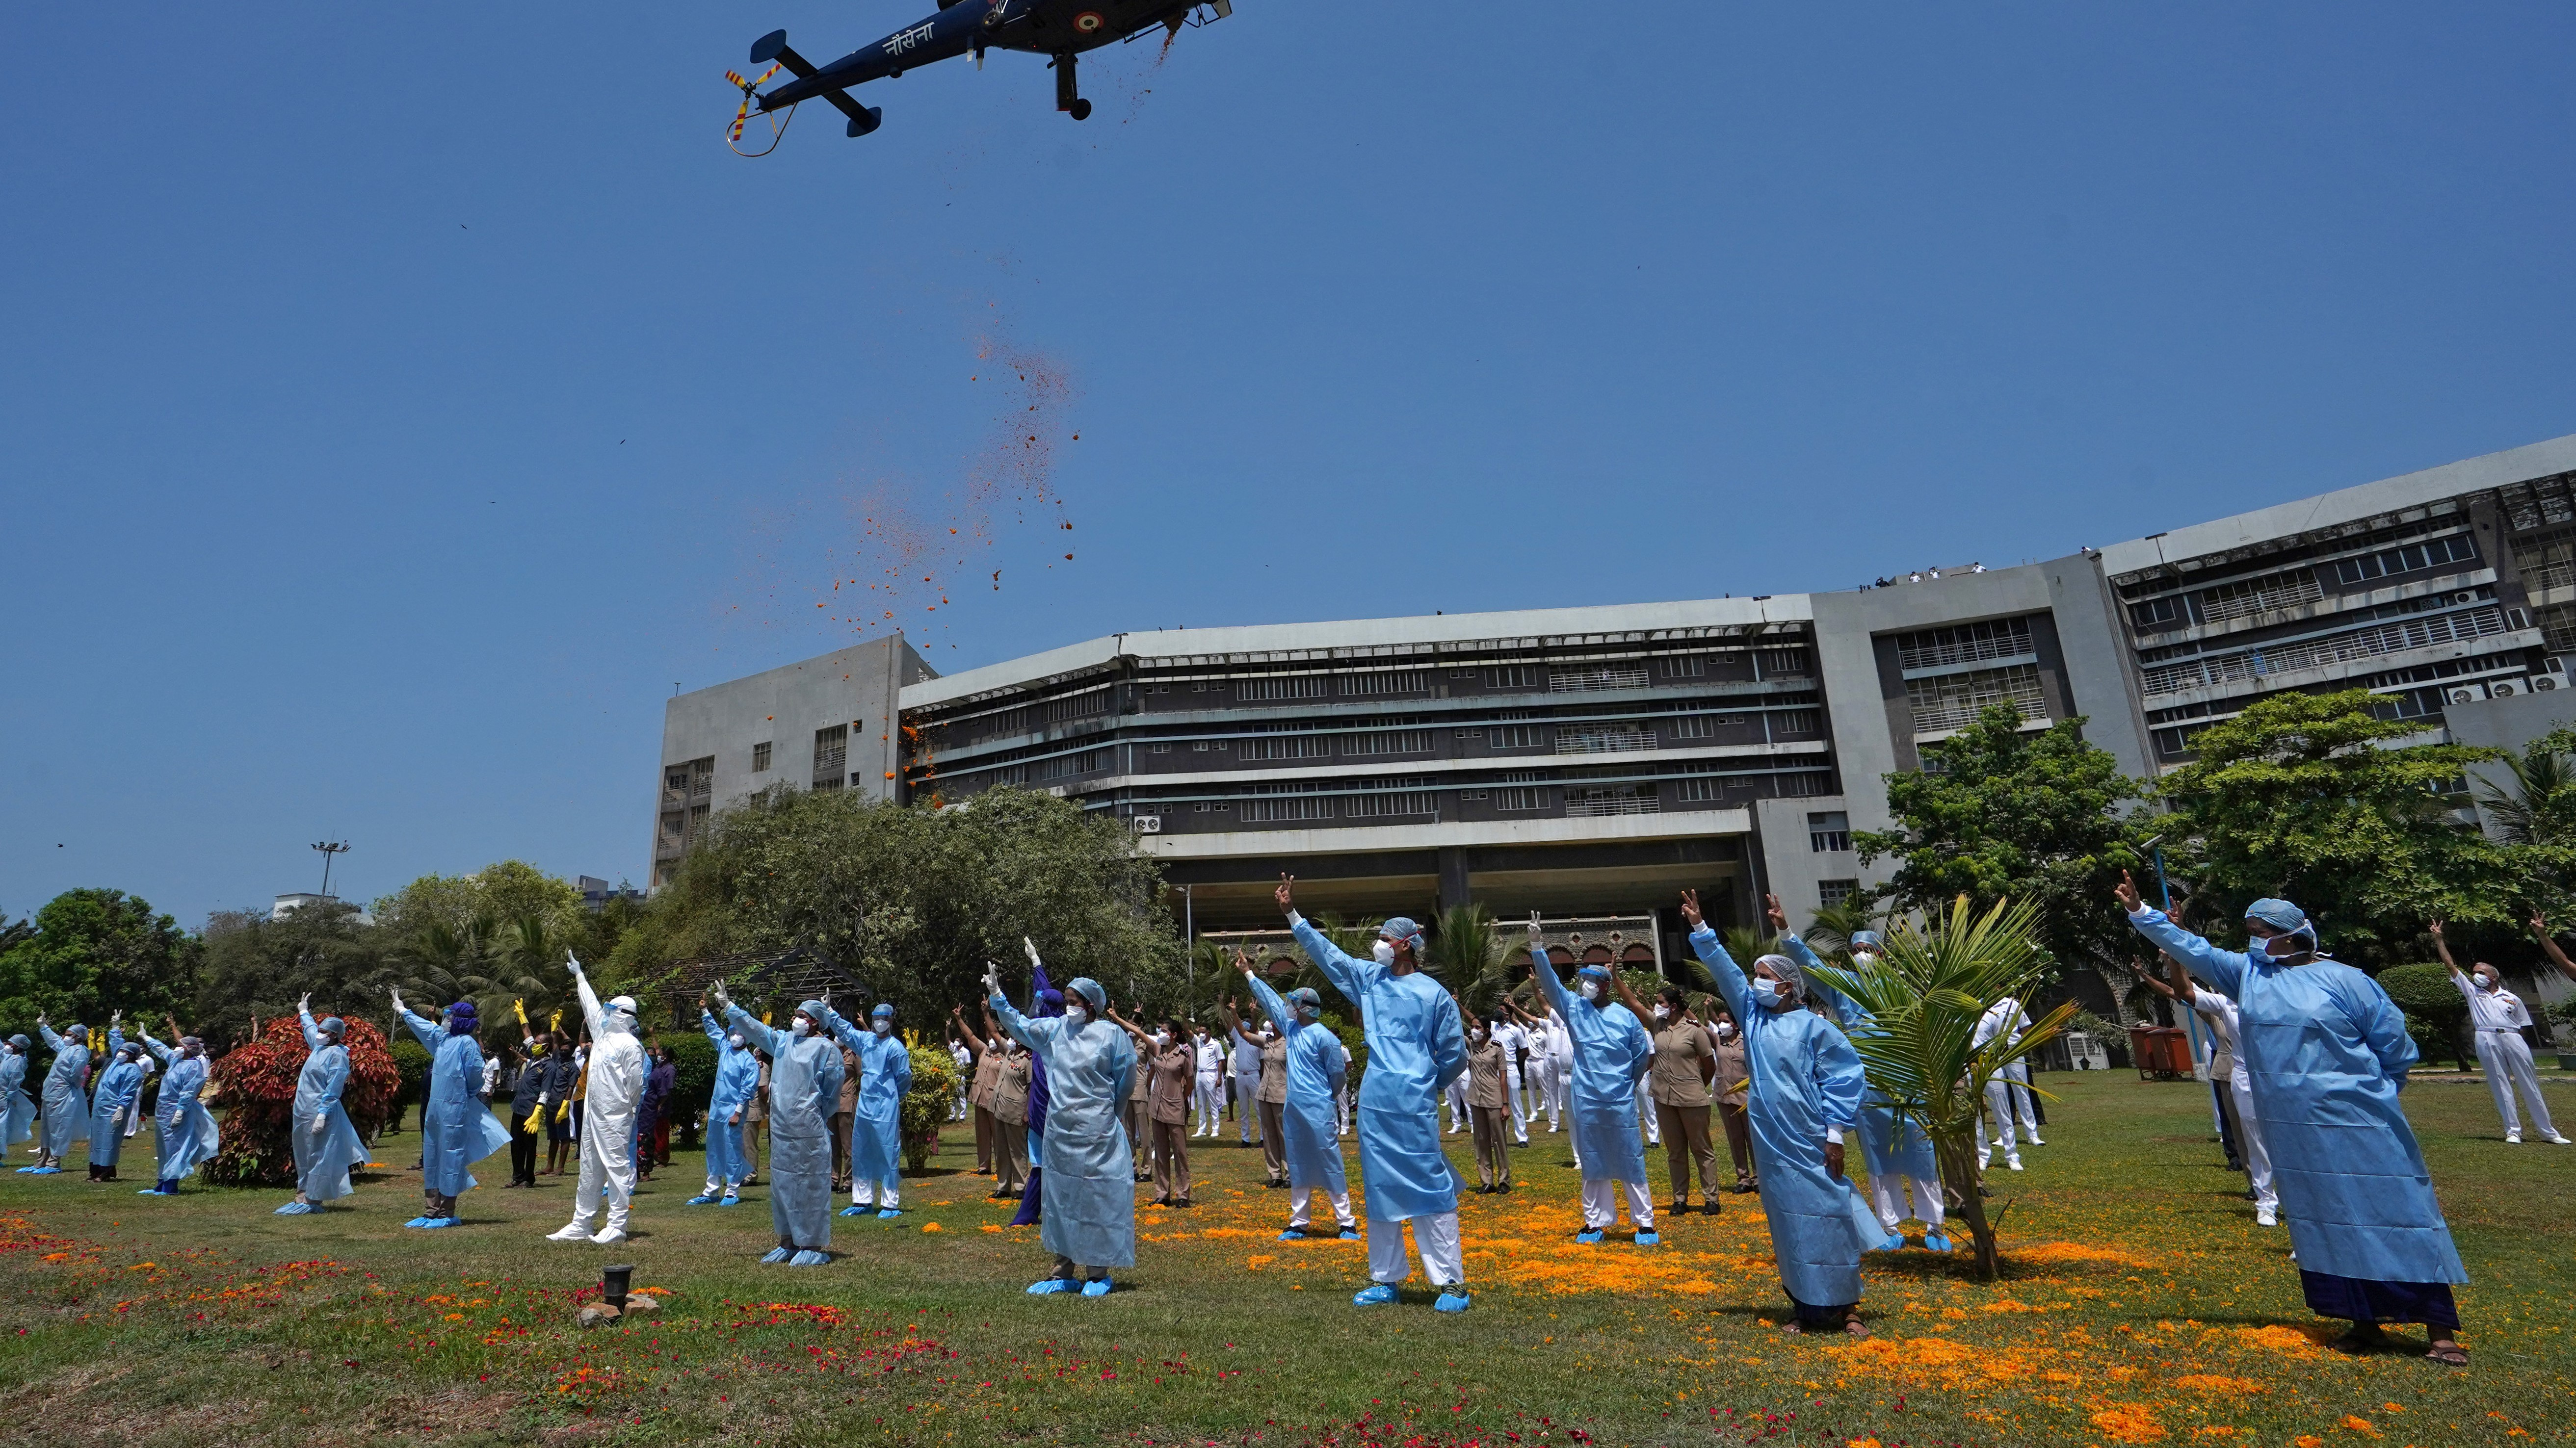 Indian Navy's Chetak helicopter drops flower petals on the staff of INHS Asvini hospital, Mumbai.